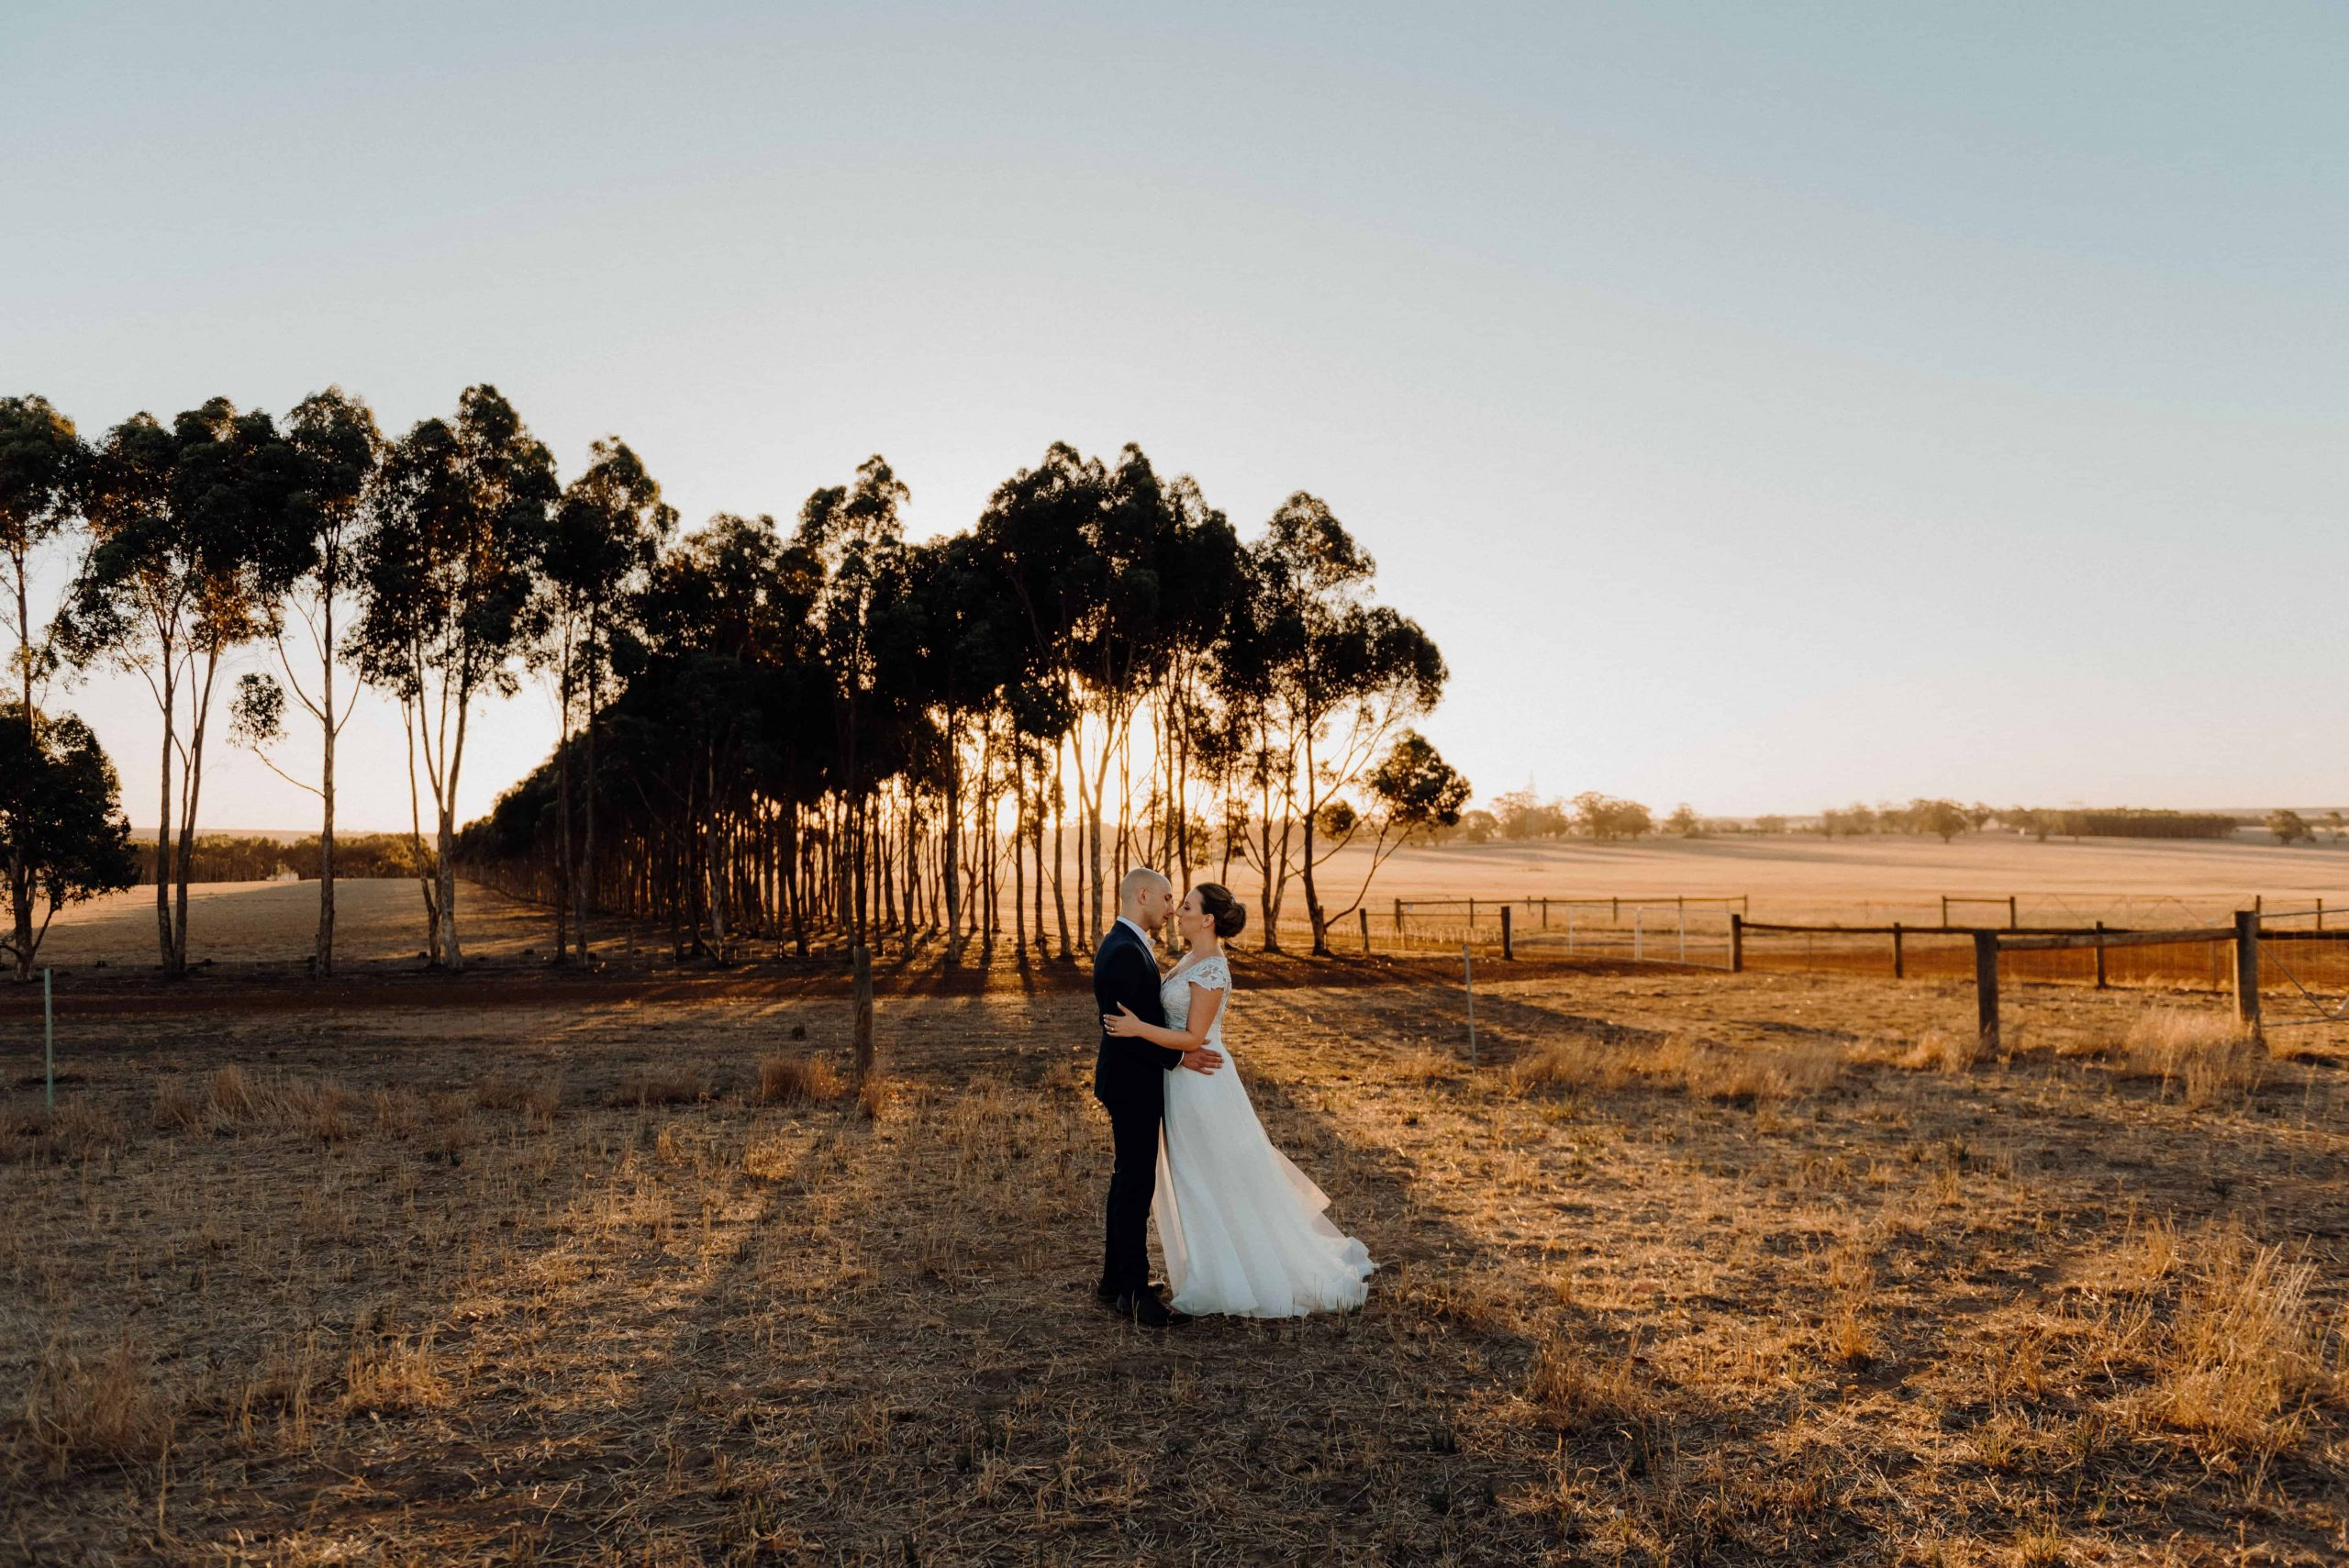 bride and groom standing together in an open field at sunset on a rural farm